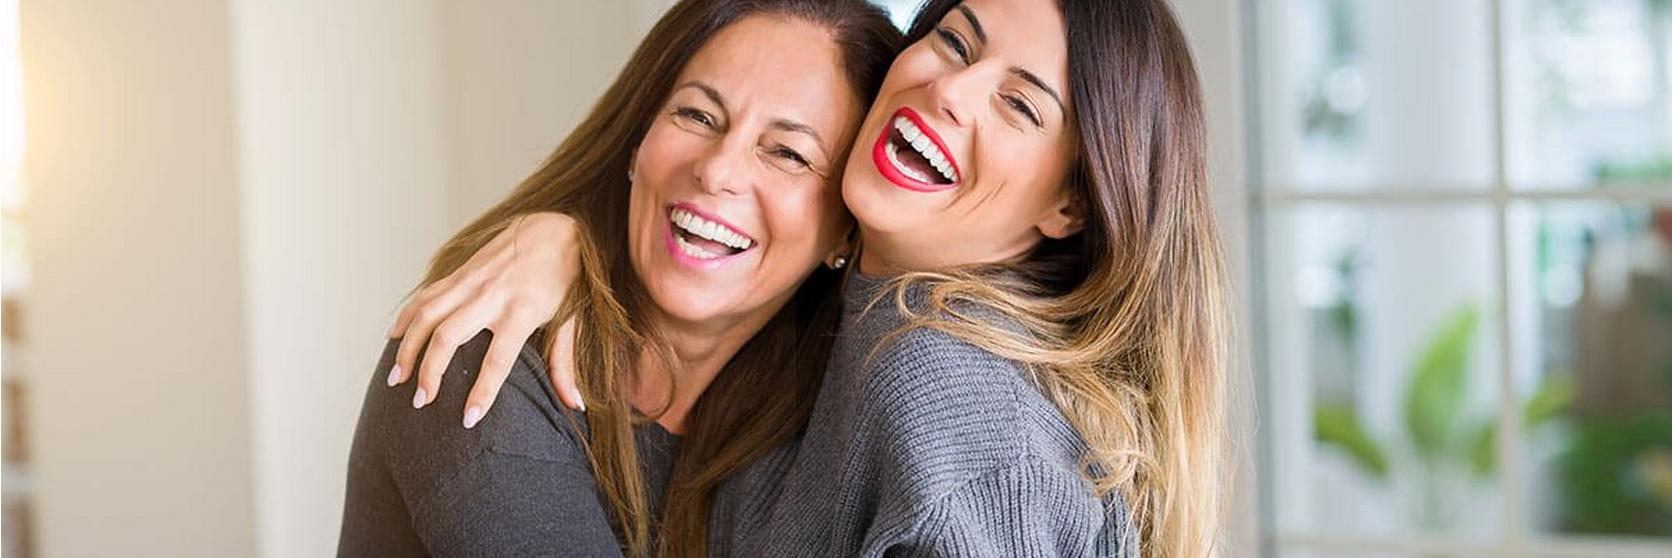 Mother-And-Daughter-Hugging-Lauging